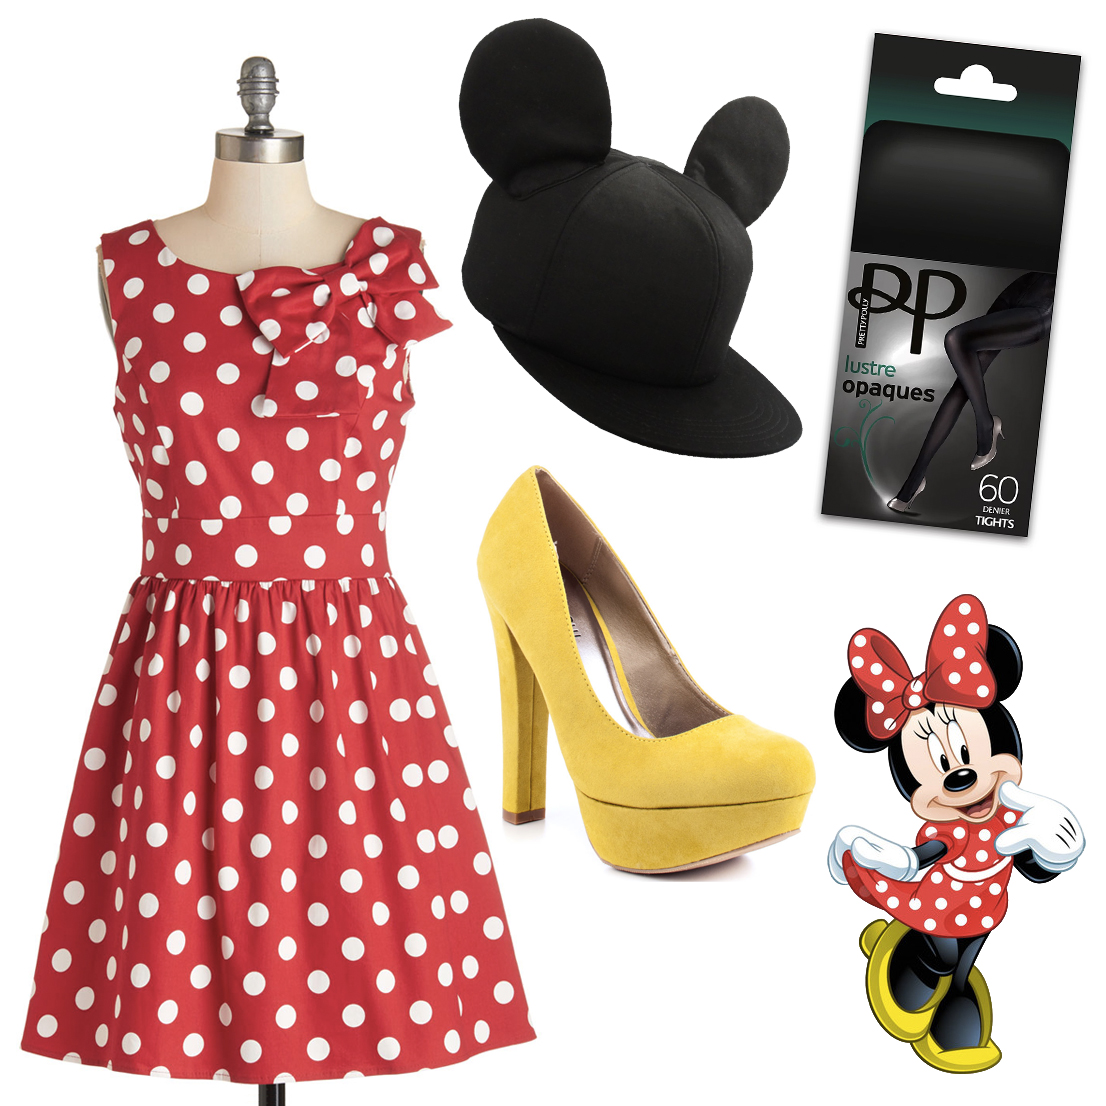 minne mouse halloween costume